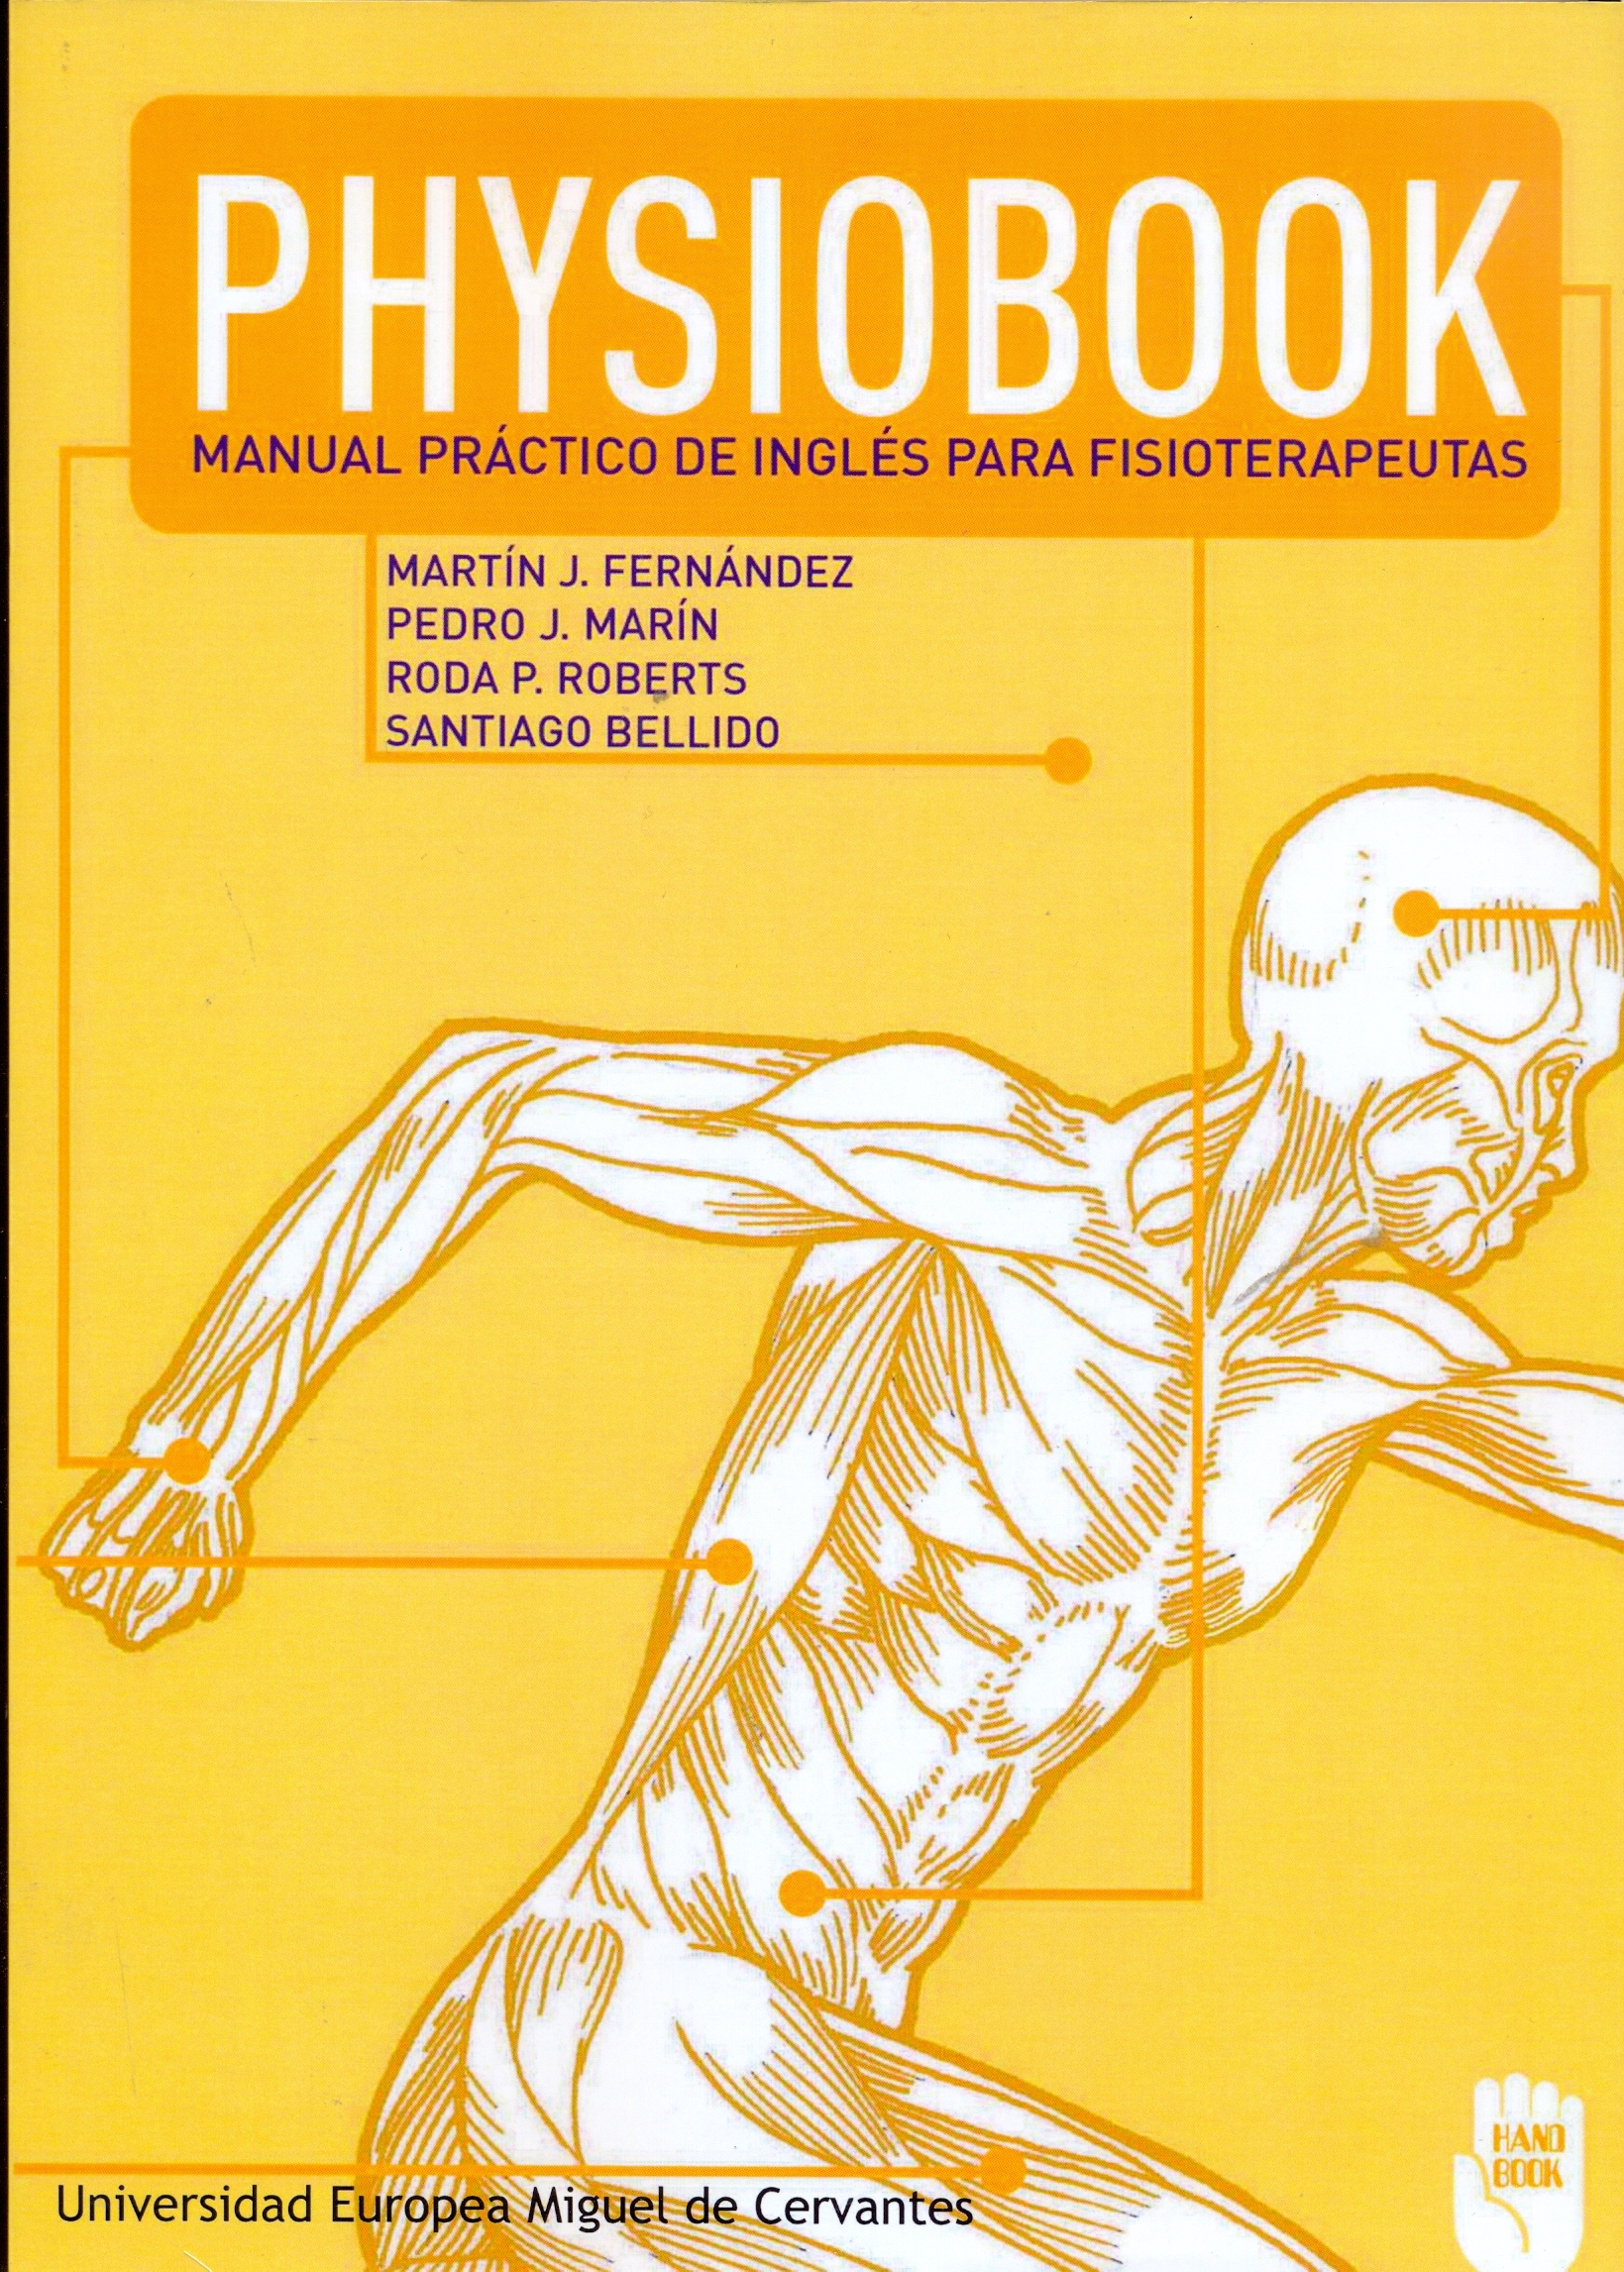 PHYSIOBOOK. MANUAL PRACTICO DE INGLÉS PARA FISIOTERAPEUTAS